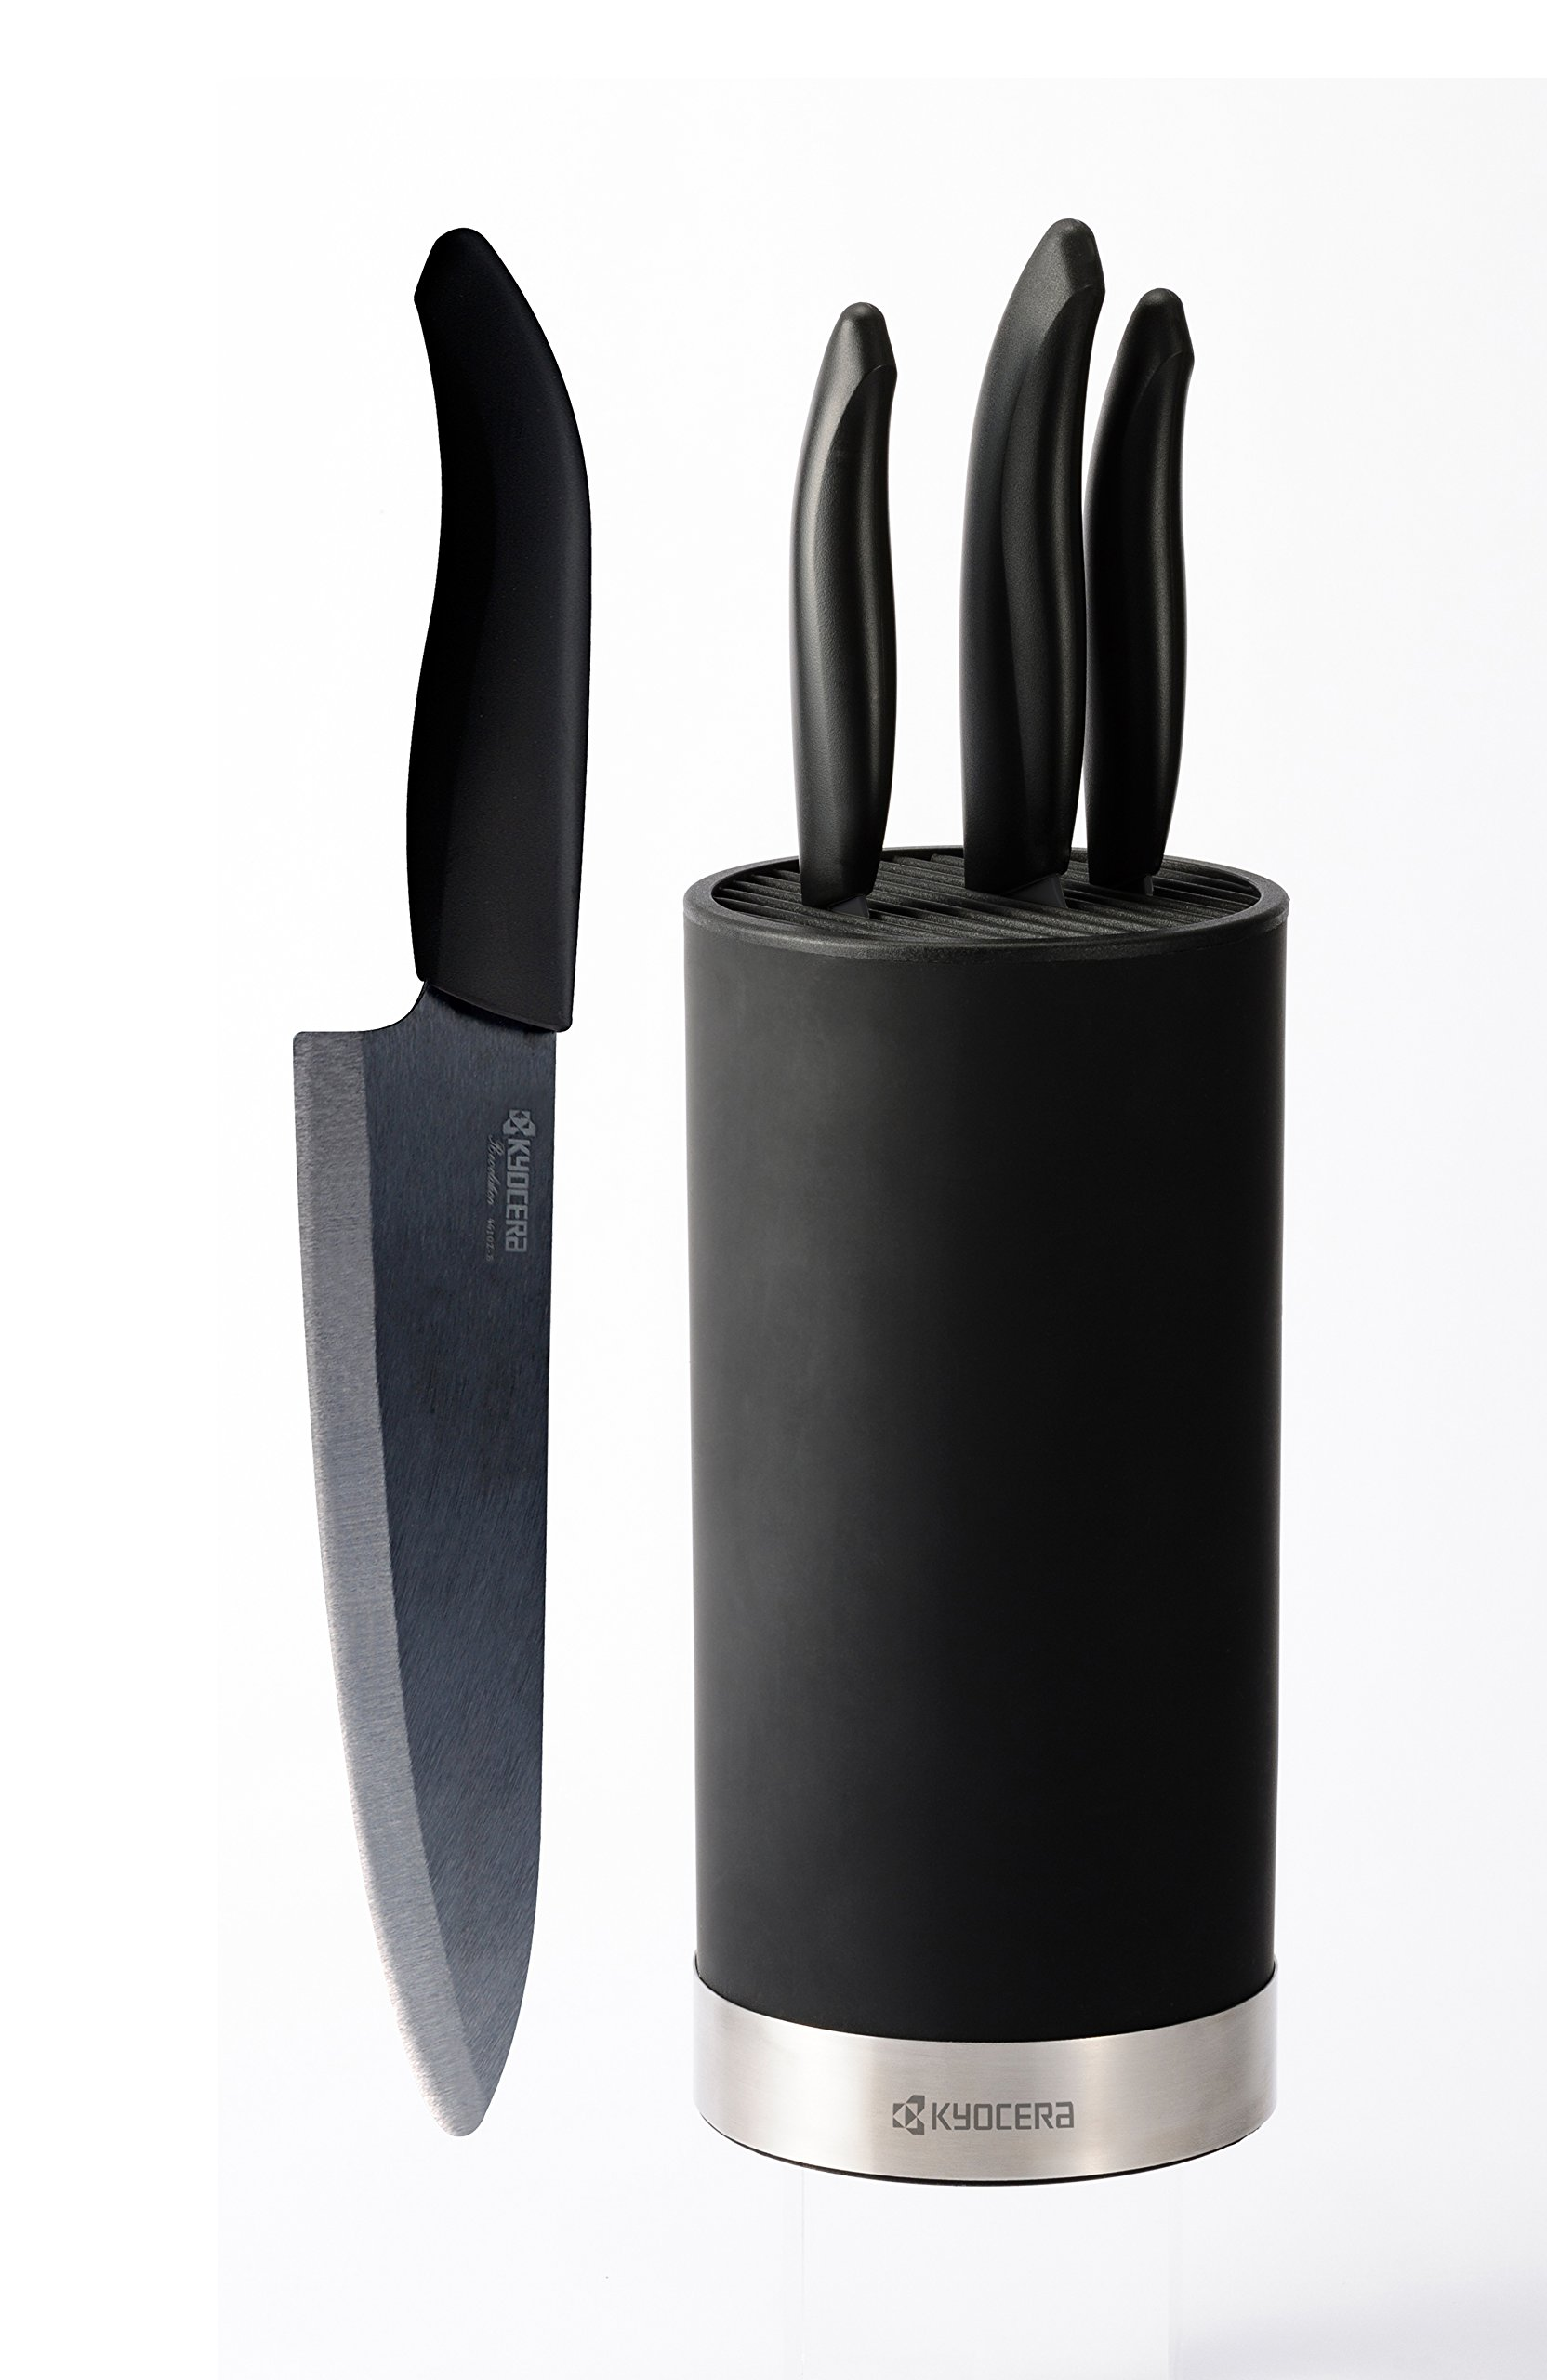 Kyocera Universal Knife Block Set Includes: Black Soft Touch Round Block and 4 Revolution Series Ceramic Knives, Black Blades